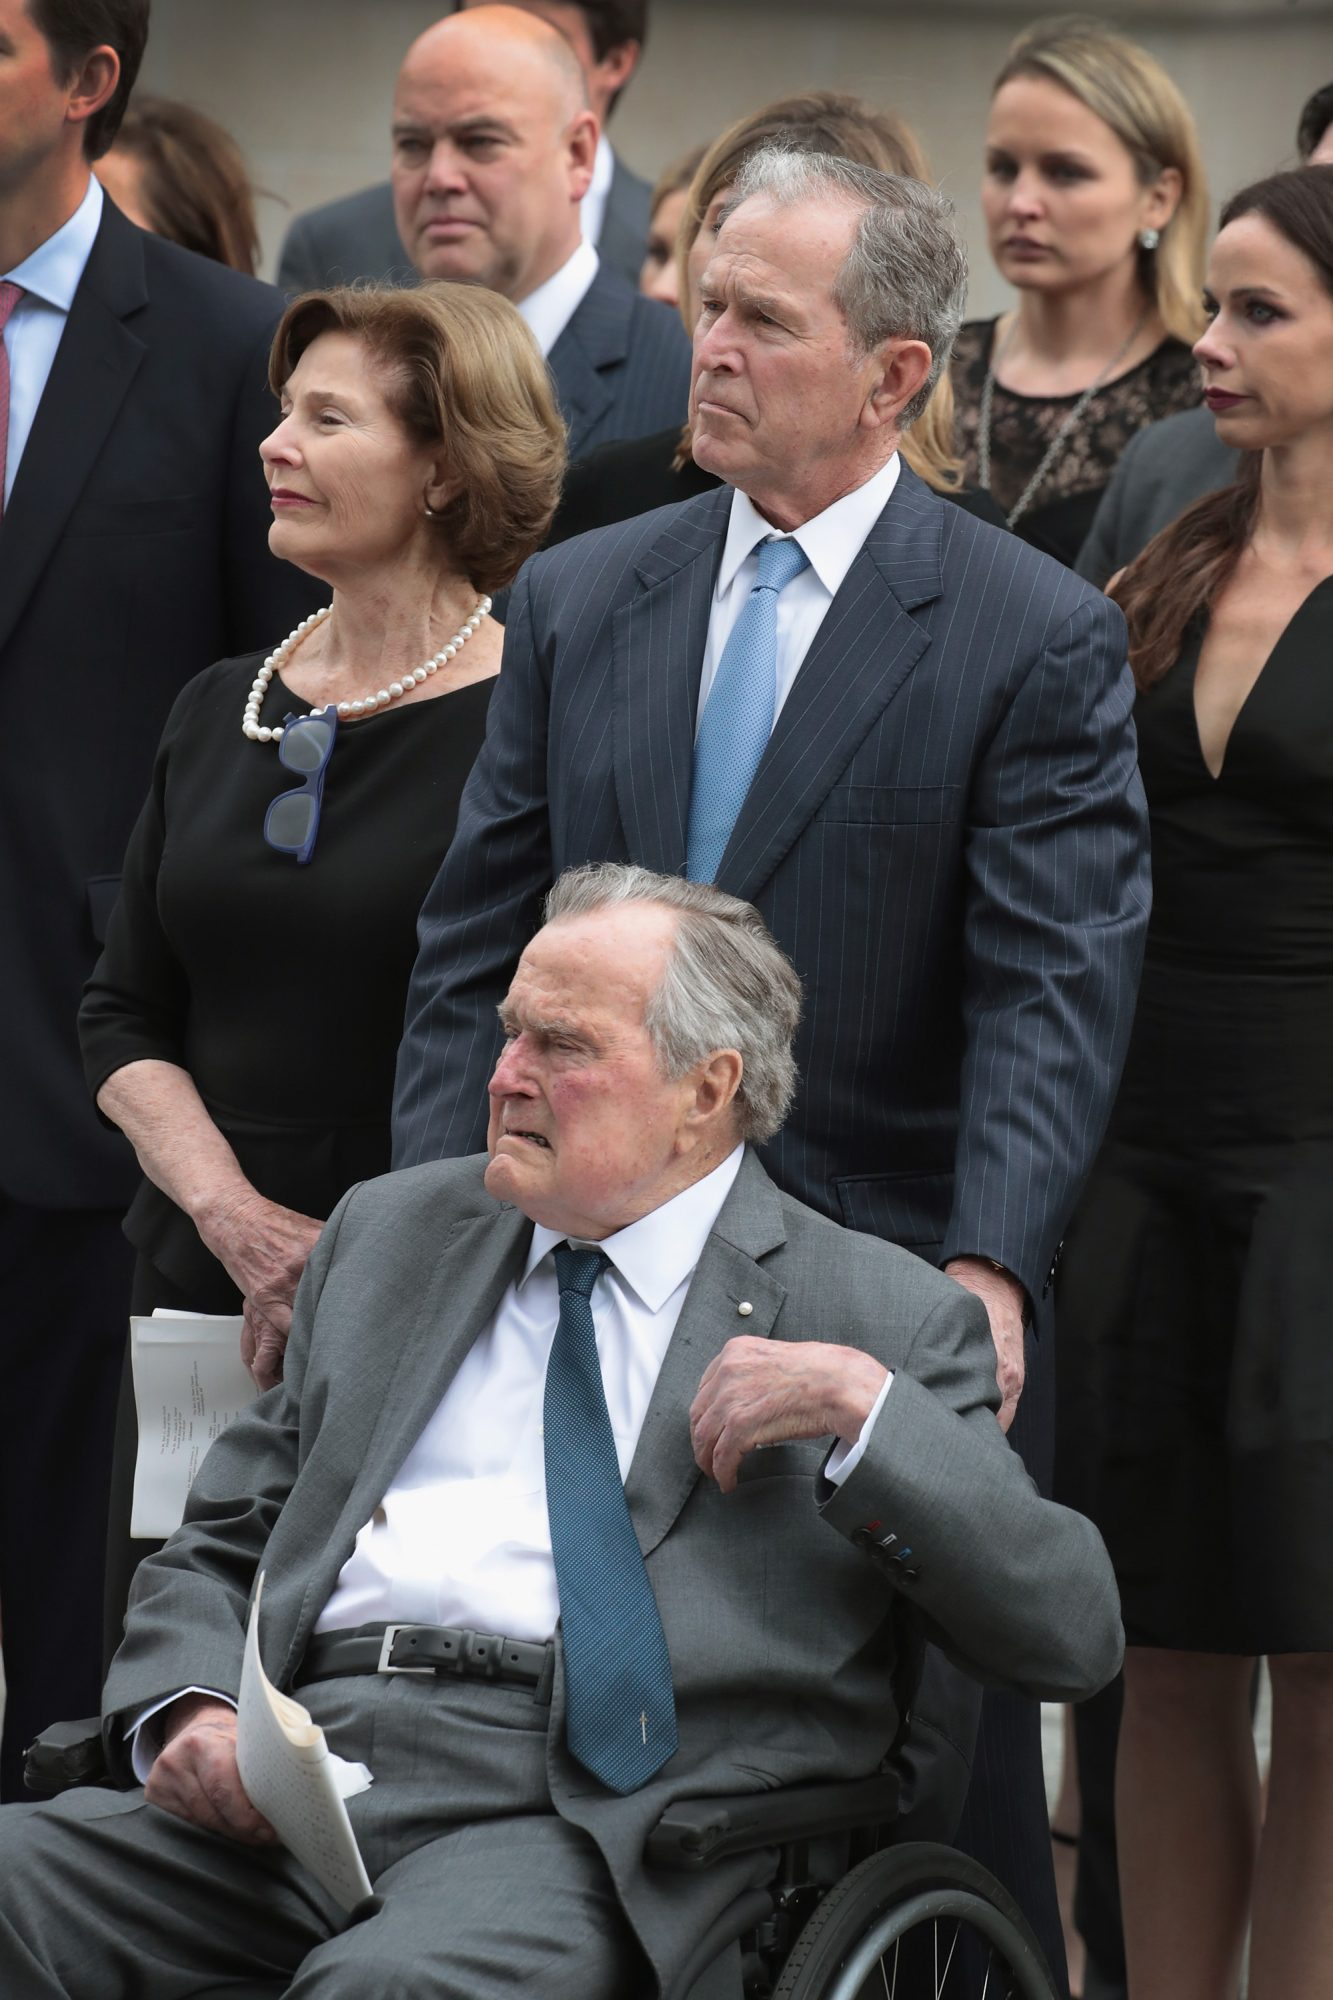 George H.W. Bush's Hospitalization After Barbara's Funeral Could Be Due to Broken Heart Syndrome